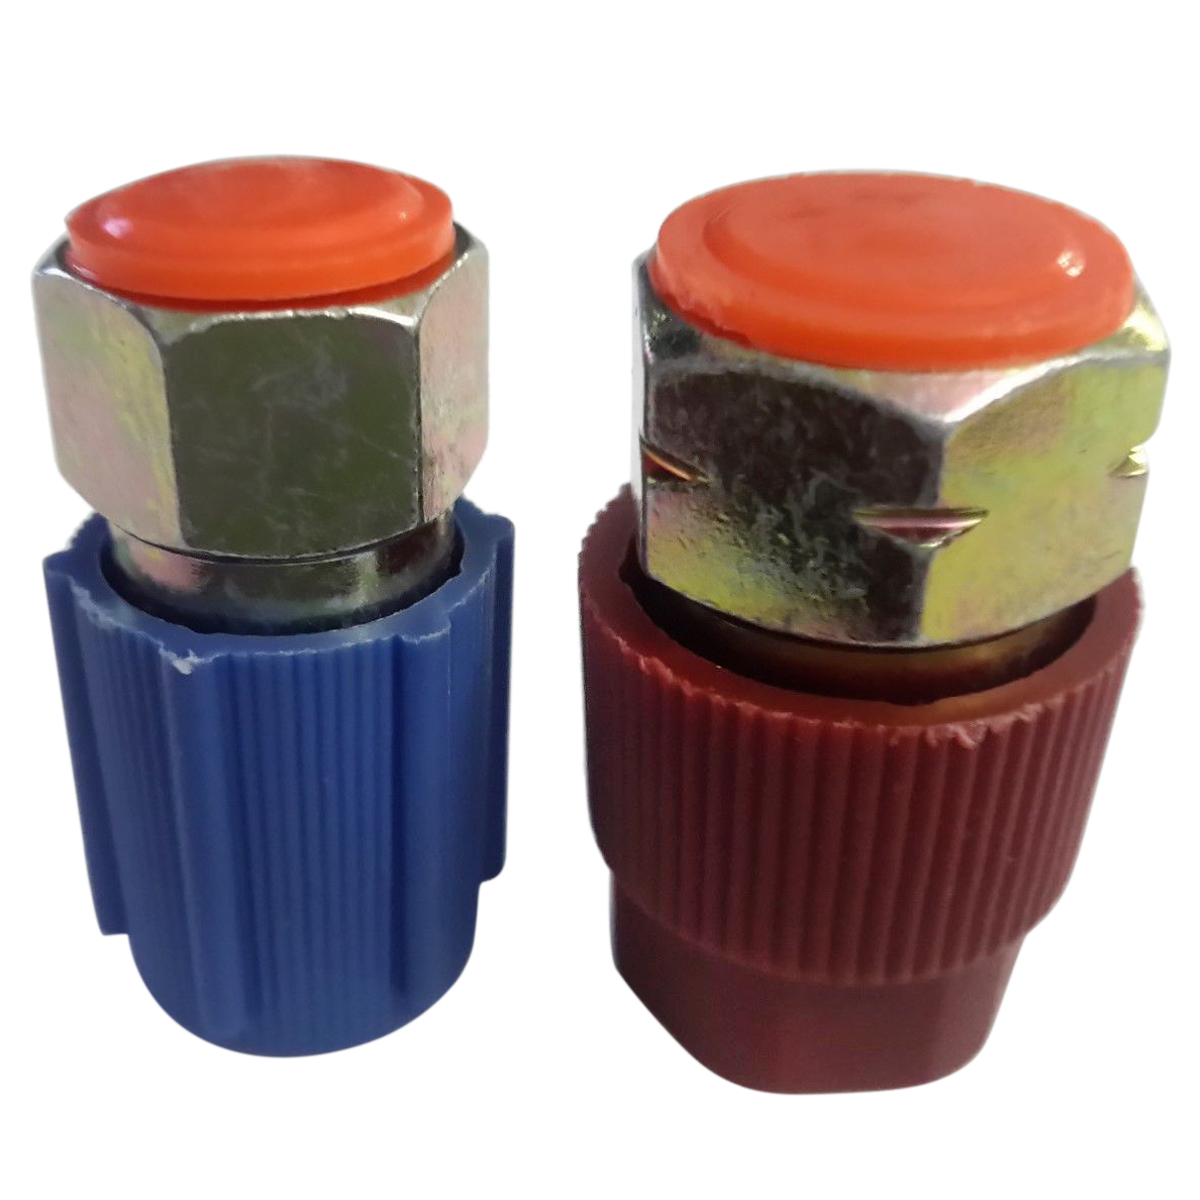 Cheap and beautiful product r134a adapter fittings in BNS Store